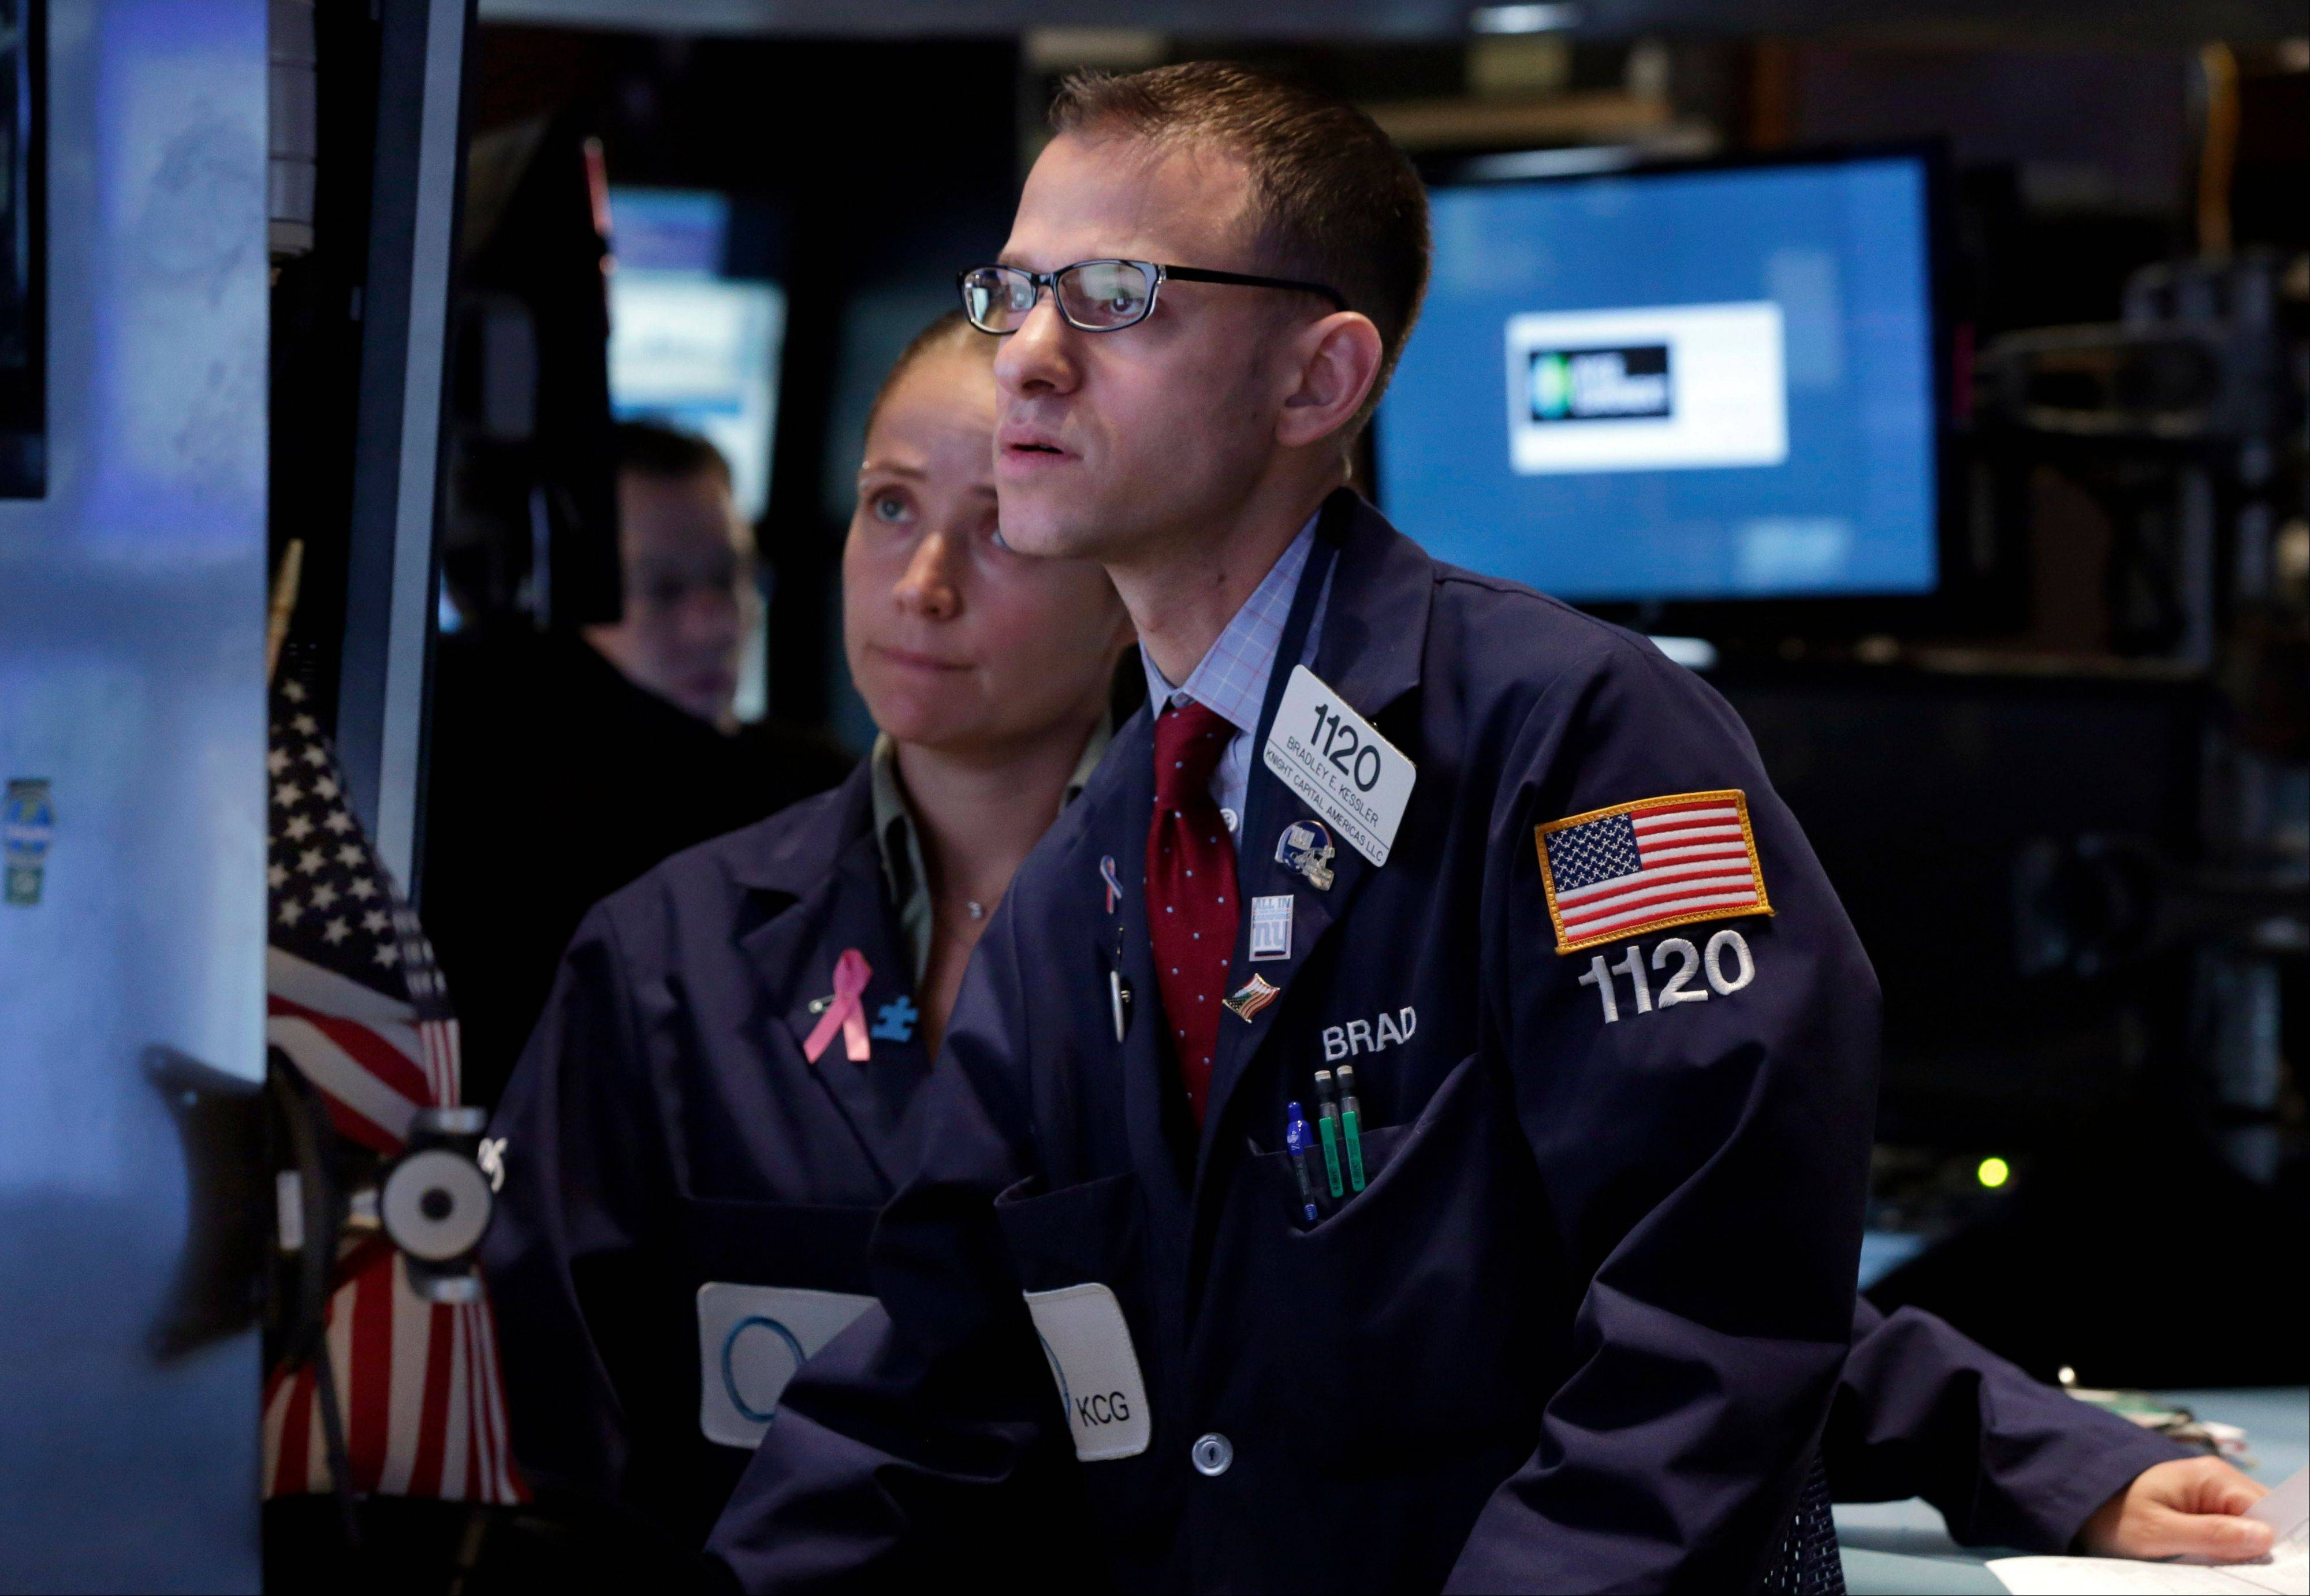 U.S. stocks fell, giving the Standard & Poor's 500 Index its biggest two-day loss since June, as concern grew that a deadlock among U.S. lawmakers over the debt limit could lead to a government default.